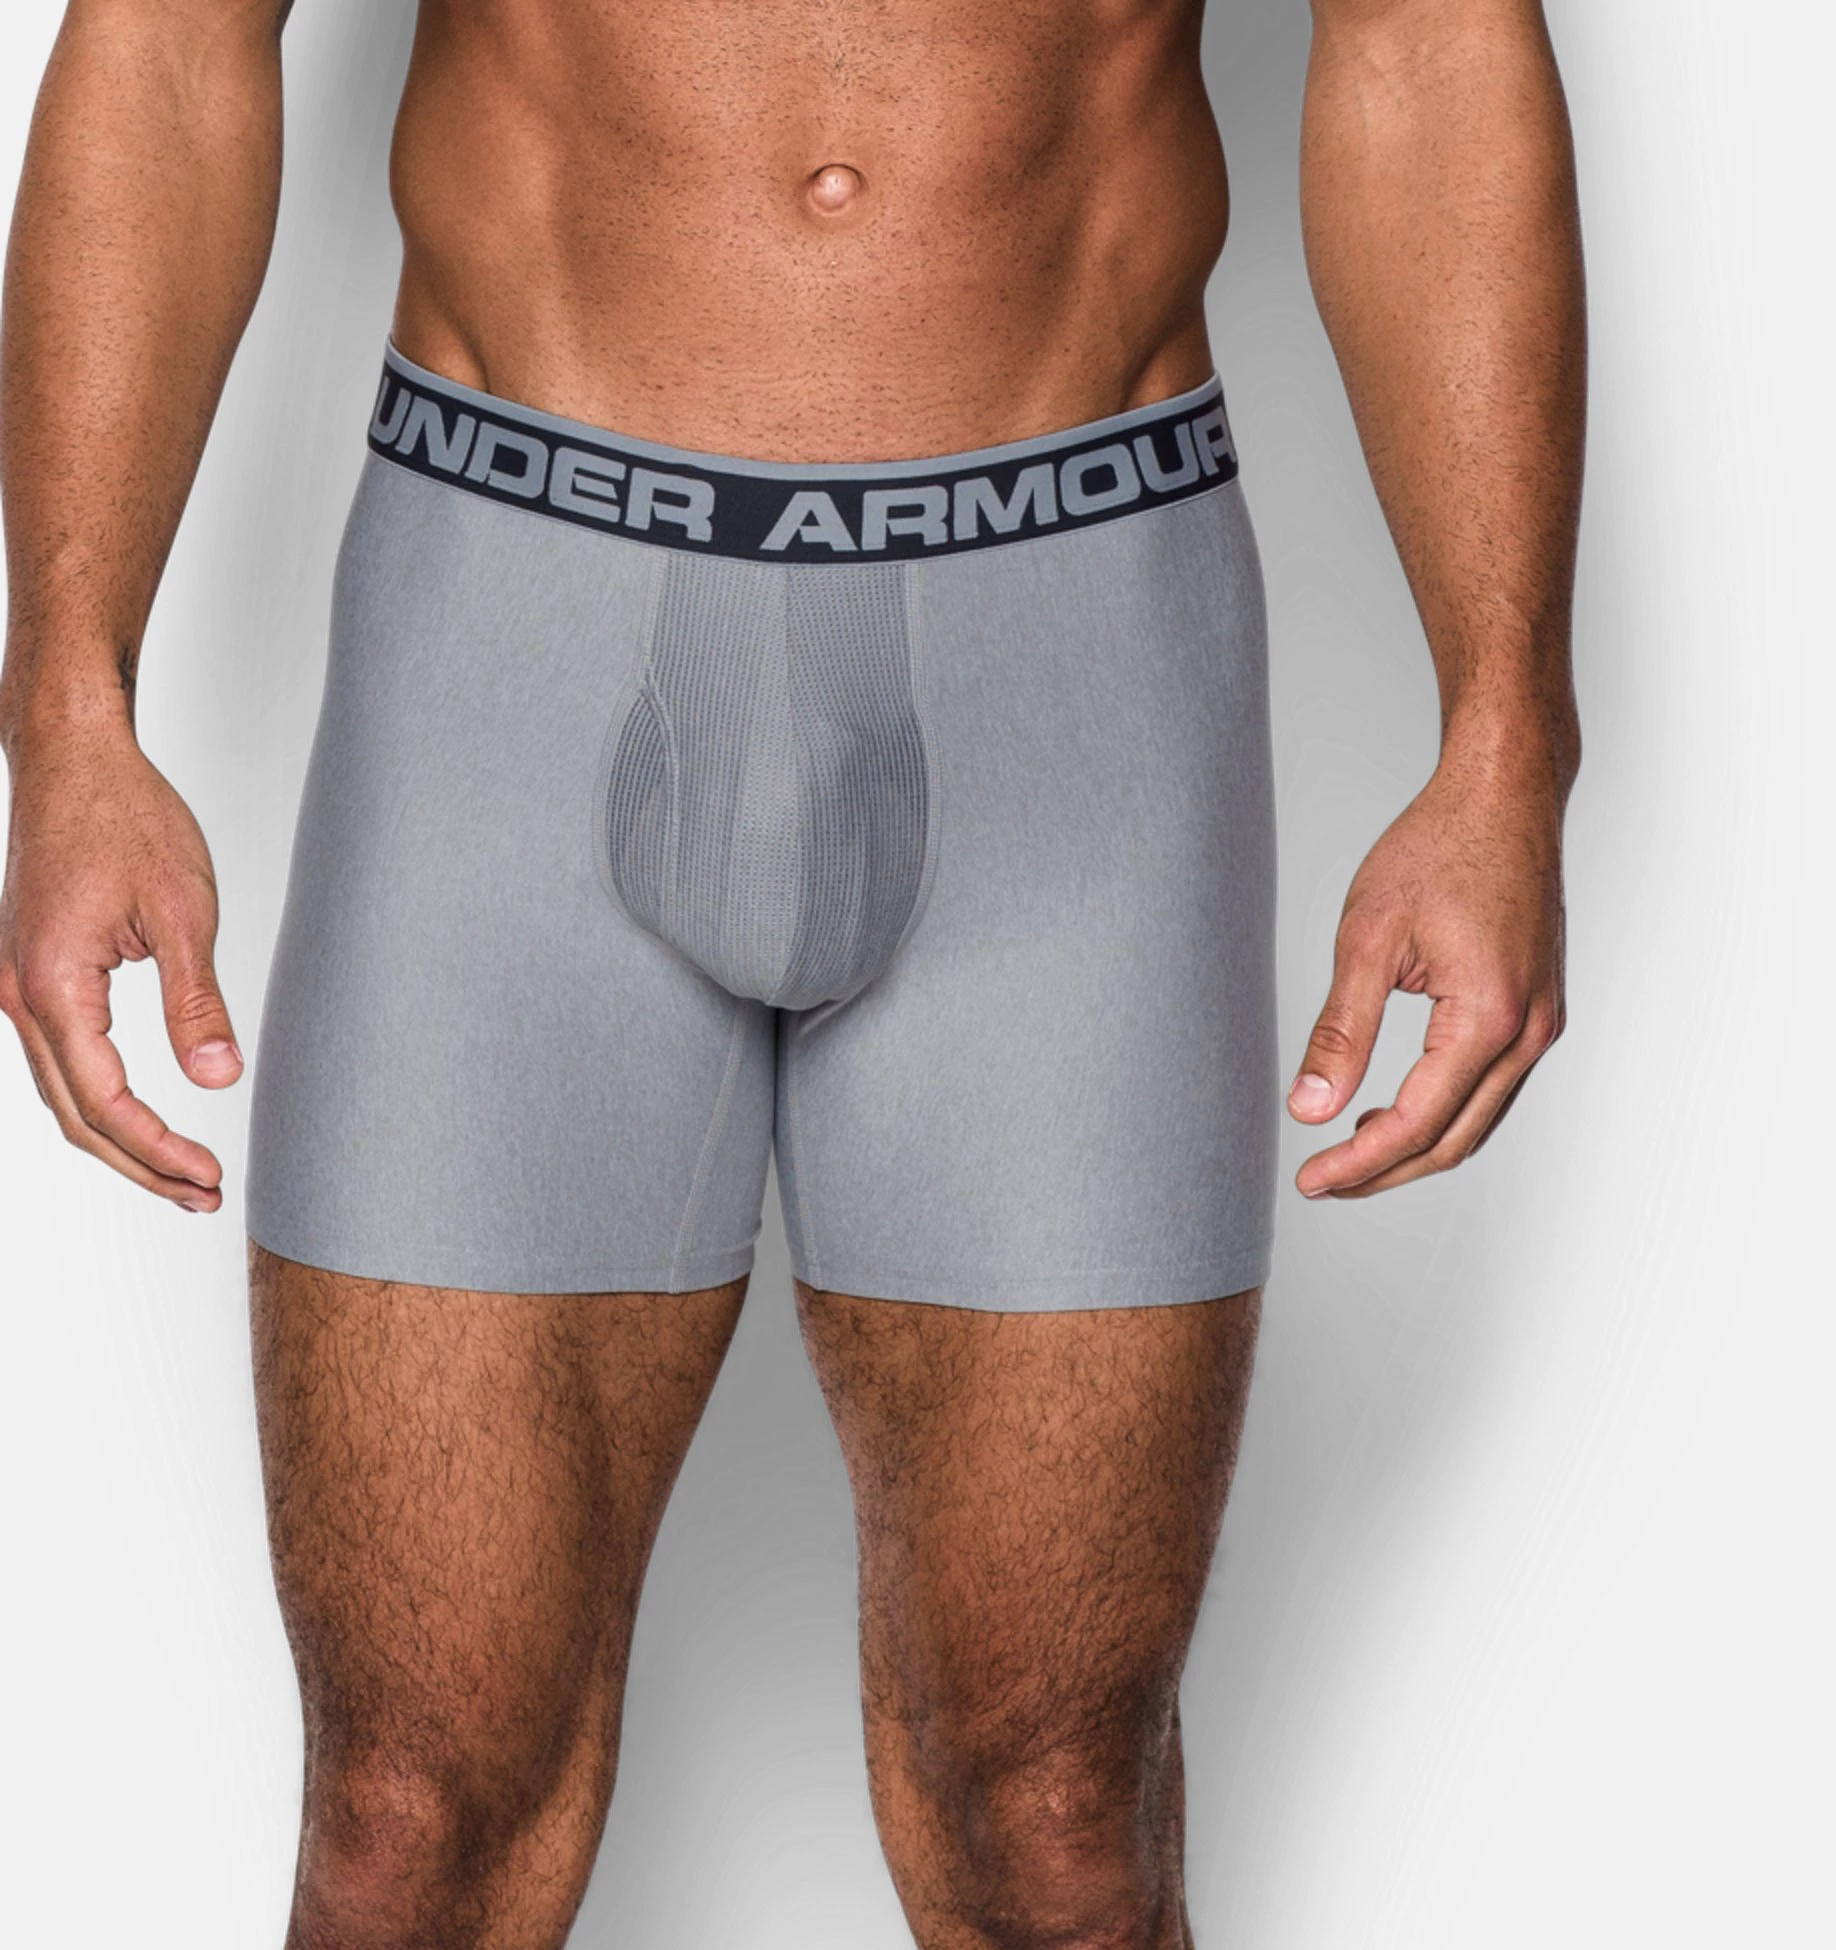 Under Armor boxerky Original, sivé